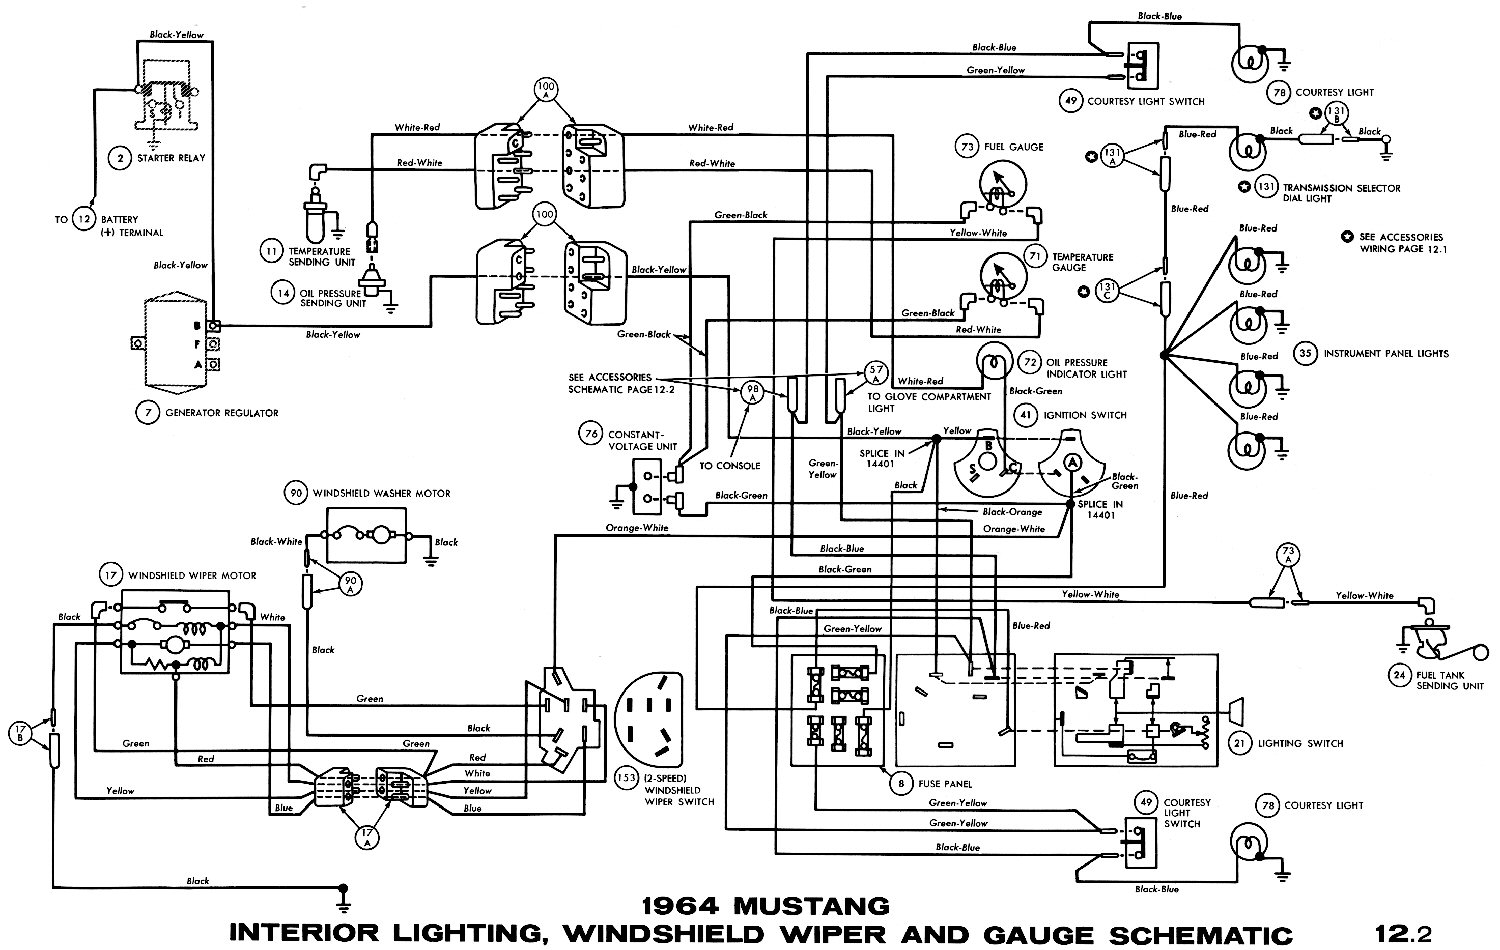 1964k 66 mustang wiring diagram online 65 ford mustang wiring diagram 1965 ford mustang wiring diagrams at gsmx.co